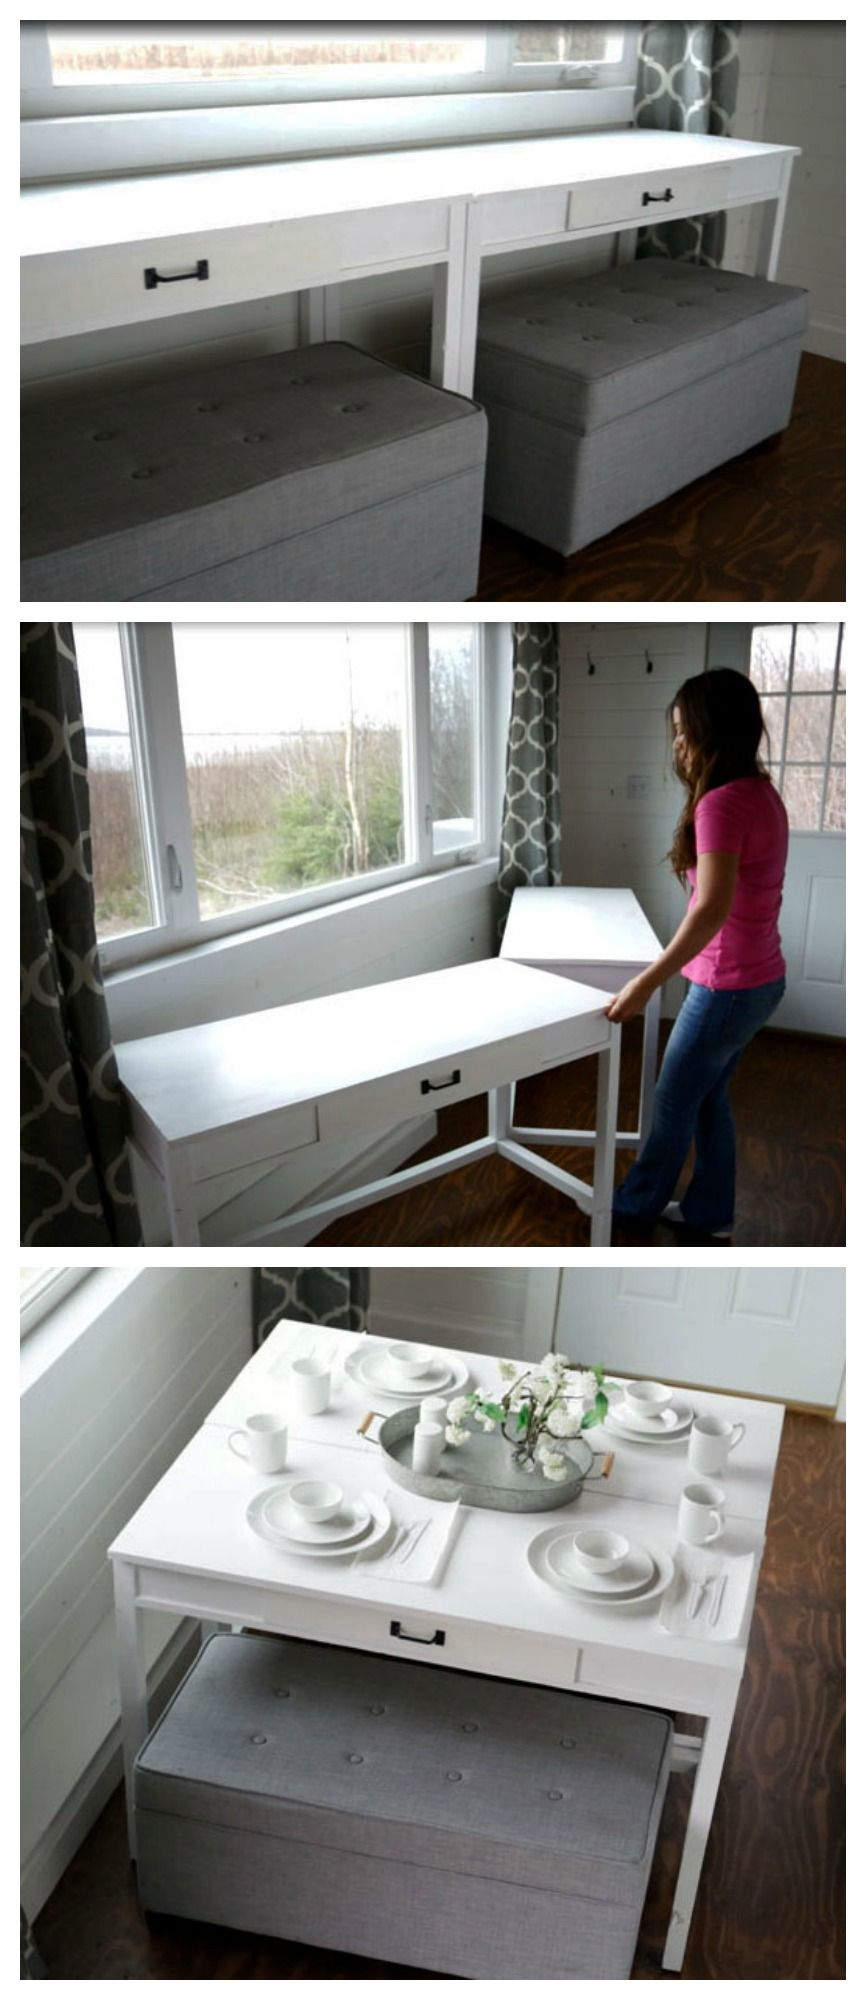 Space Saver: DIY Convertible Desk For Tiny House U003du003e  Http://coolcreativity.com/handcraft/diy Convertible Desk Space Saving Idea/  #Desk #Convertible #Small # ...